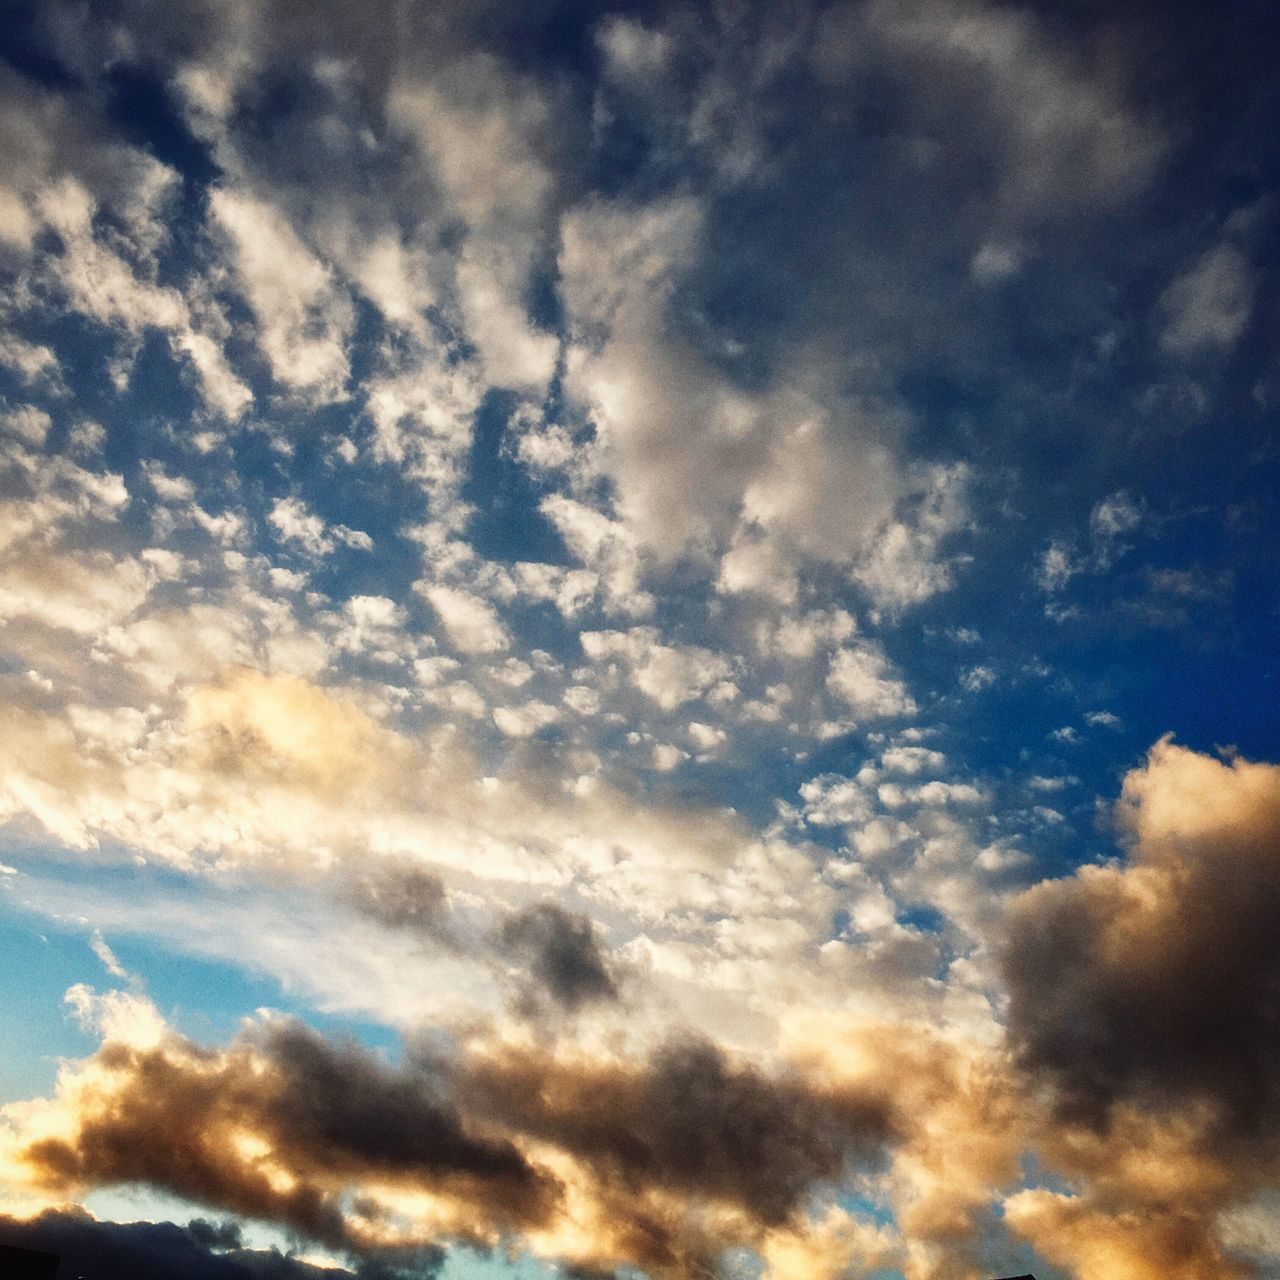 sky, cloud - sky, low angle view, beauty in nature, backgrounds, nature, no people, sky only, dramatic sky, full frame, scenics, tranquility, outdoors, abstract, tranquil scene, day, blue, sunset